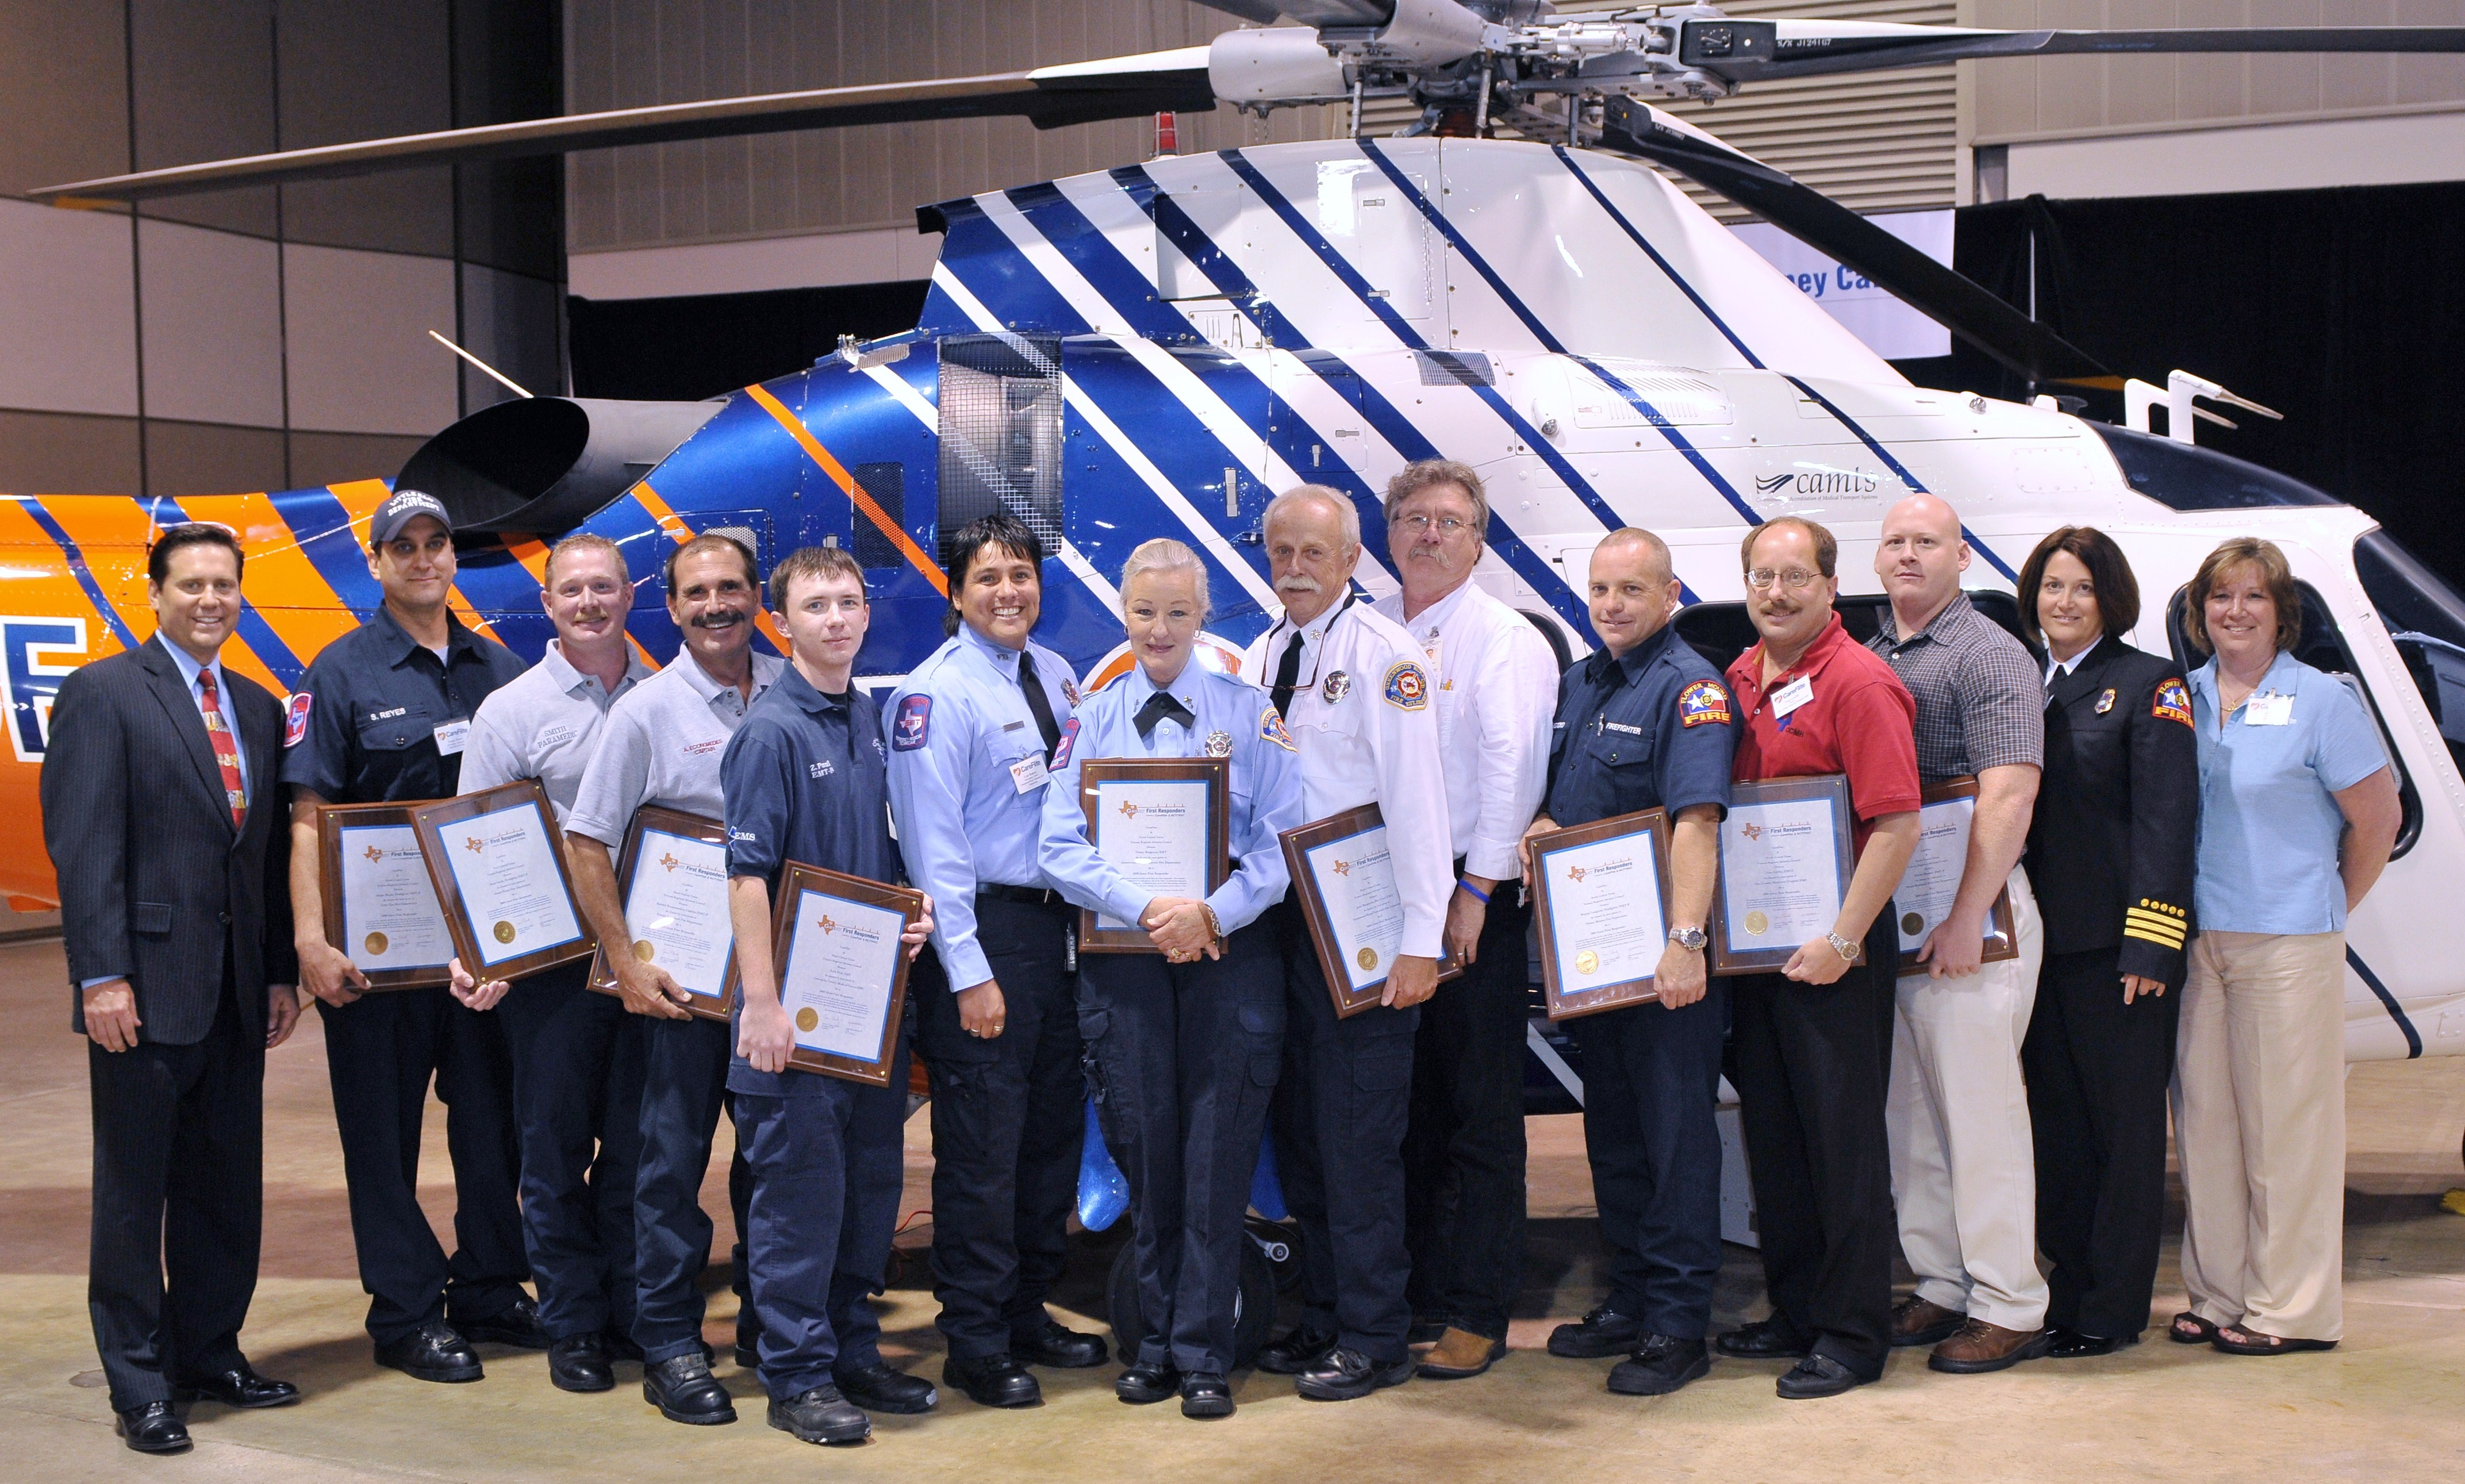 2008 Great First Responders Winners